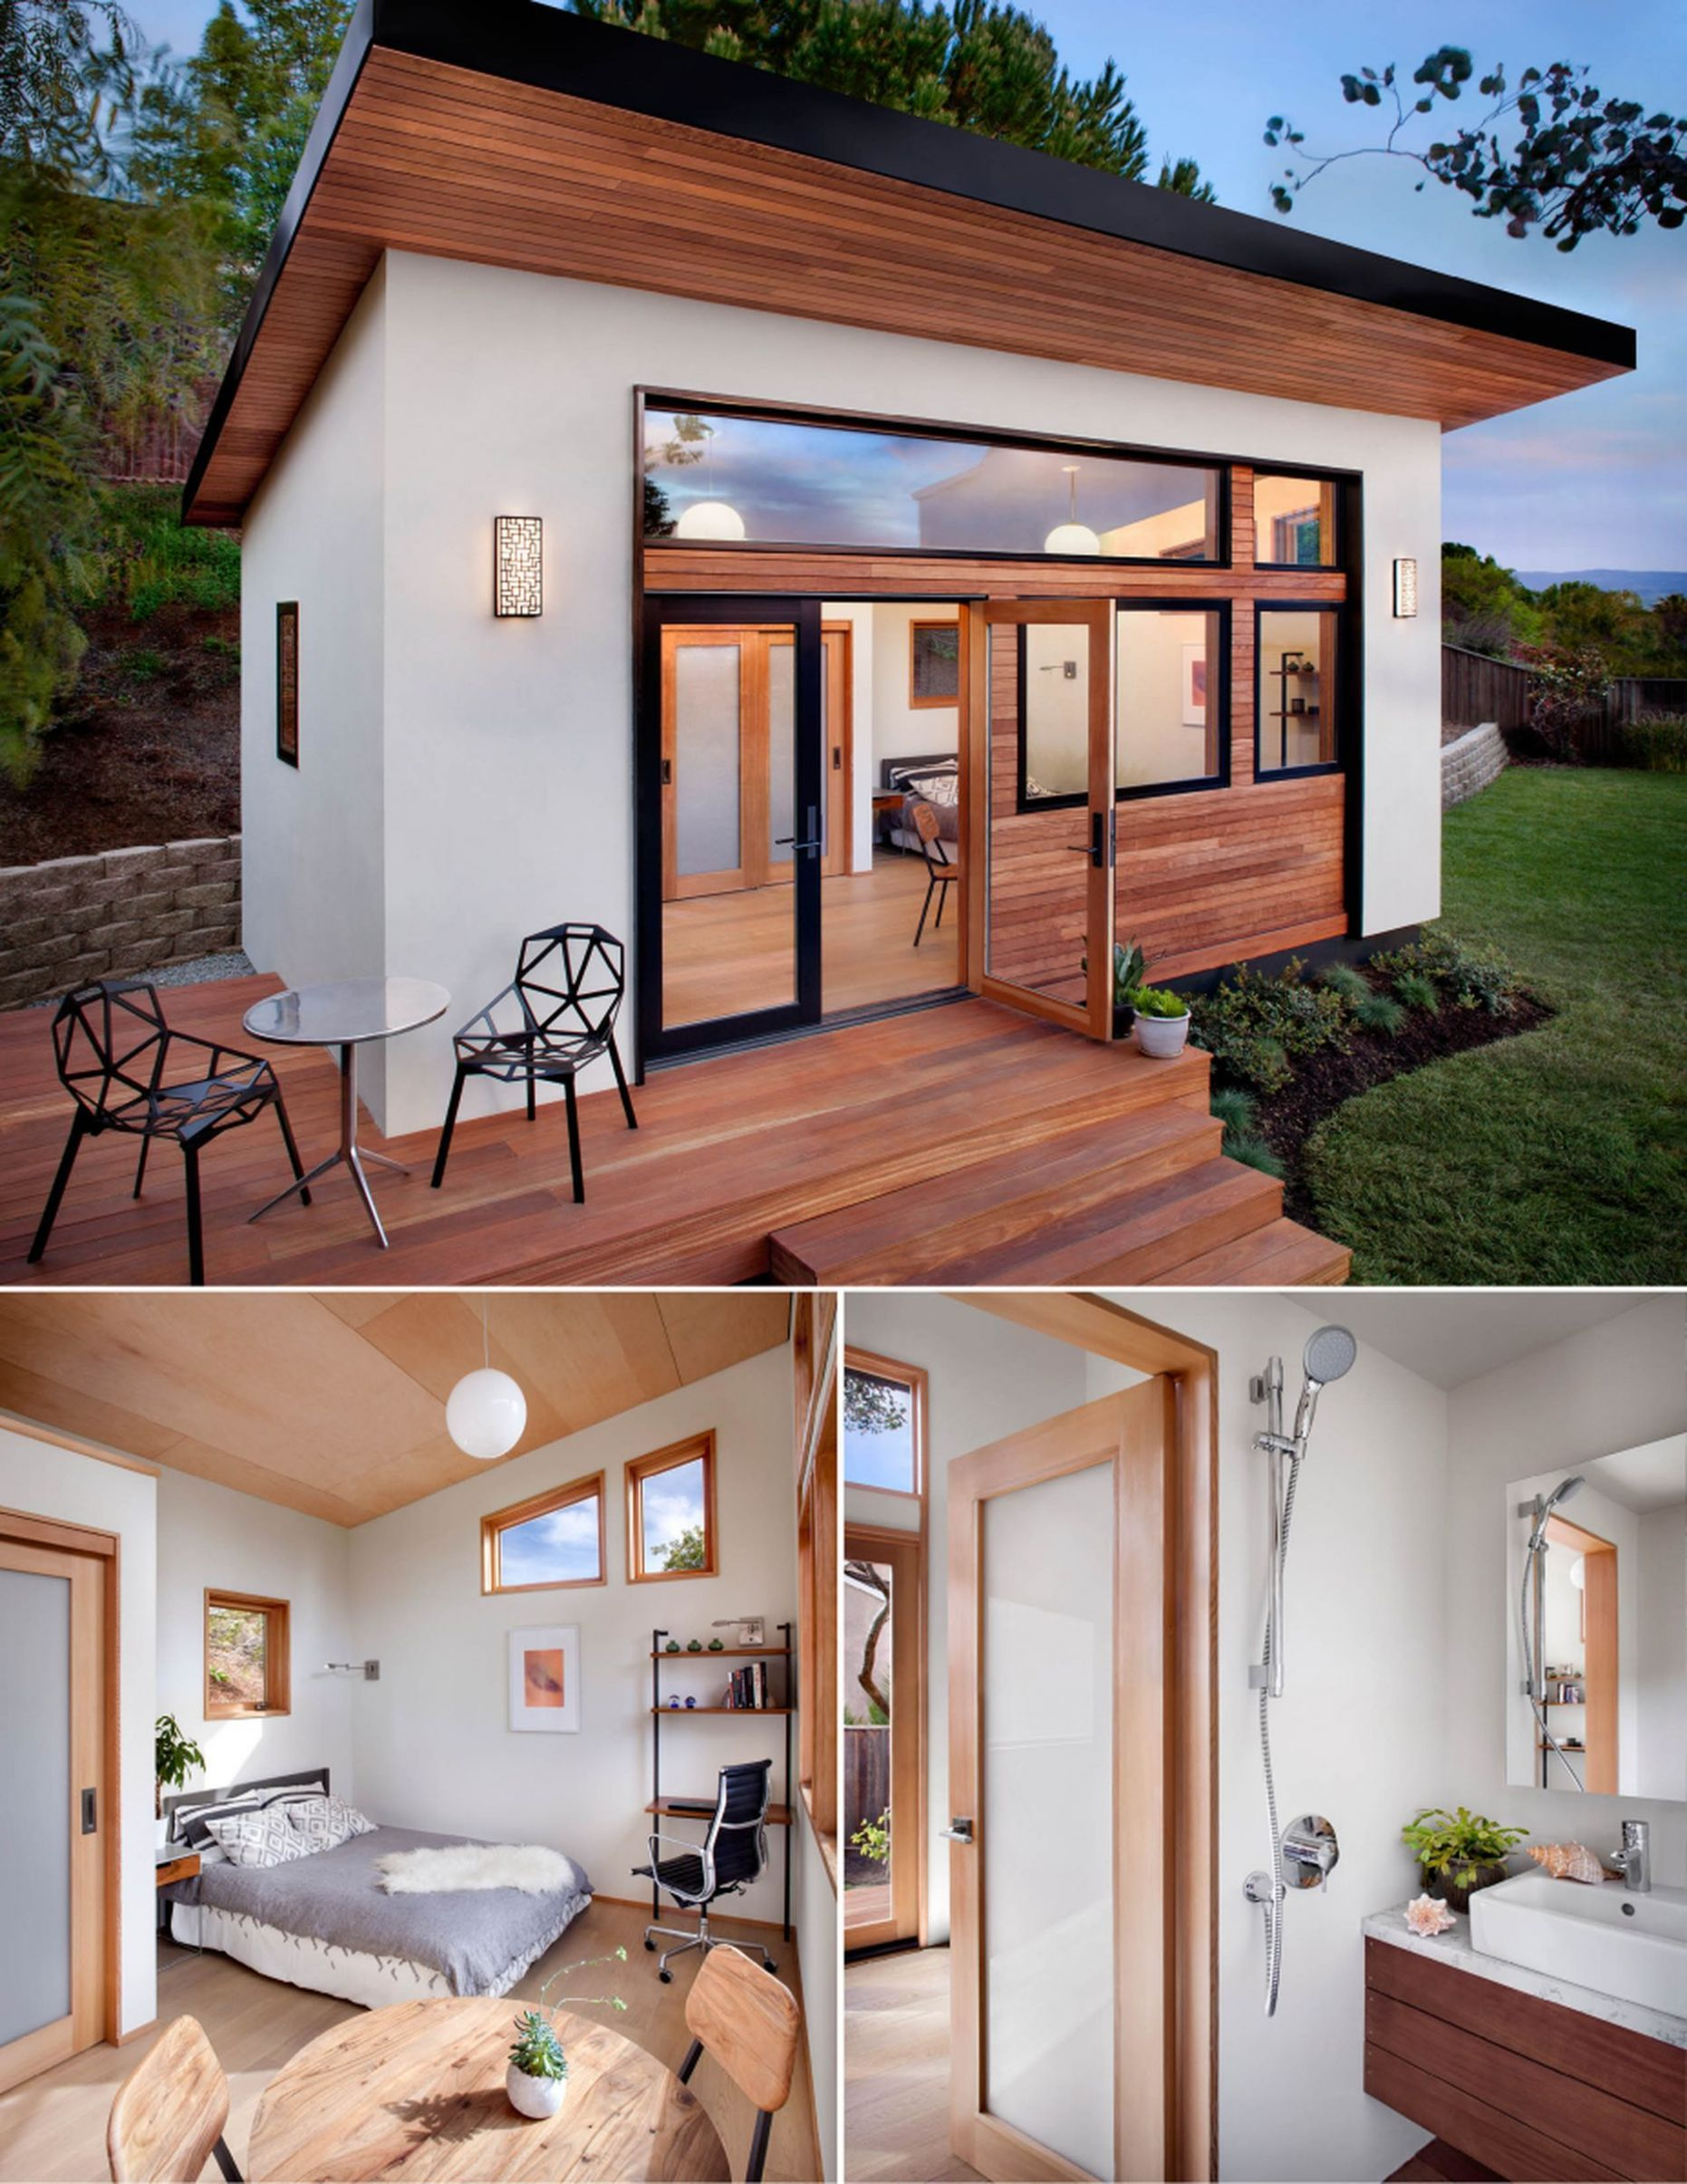 Tiny house zoning regulations: What you need to know   Tiny house ..